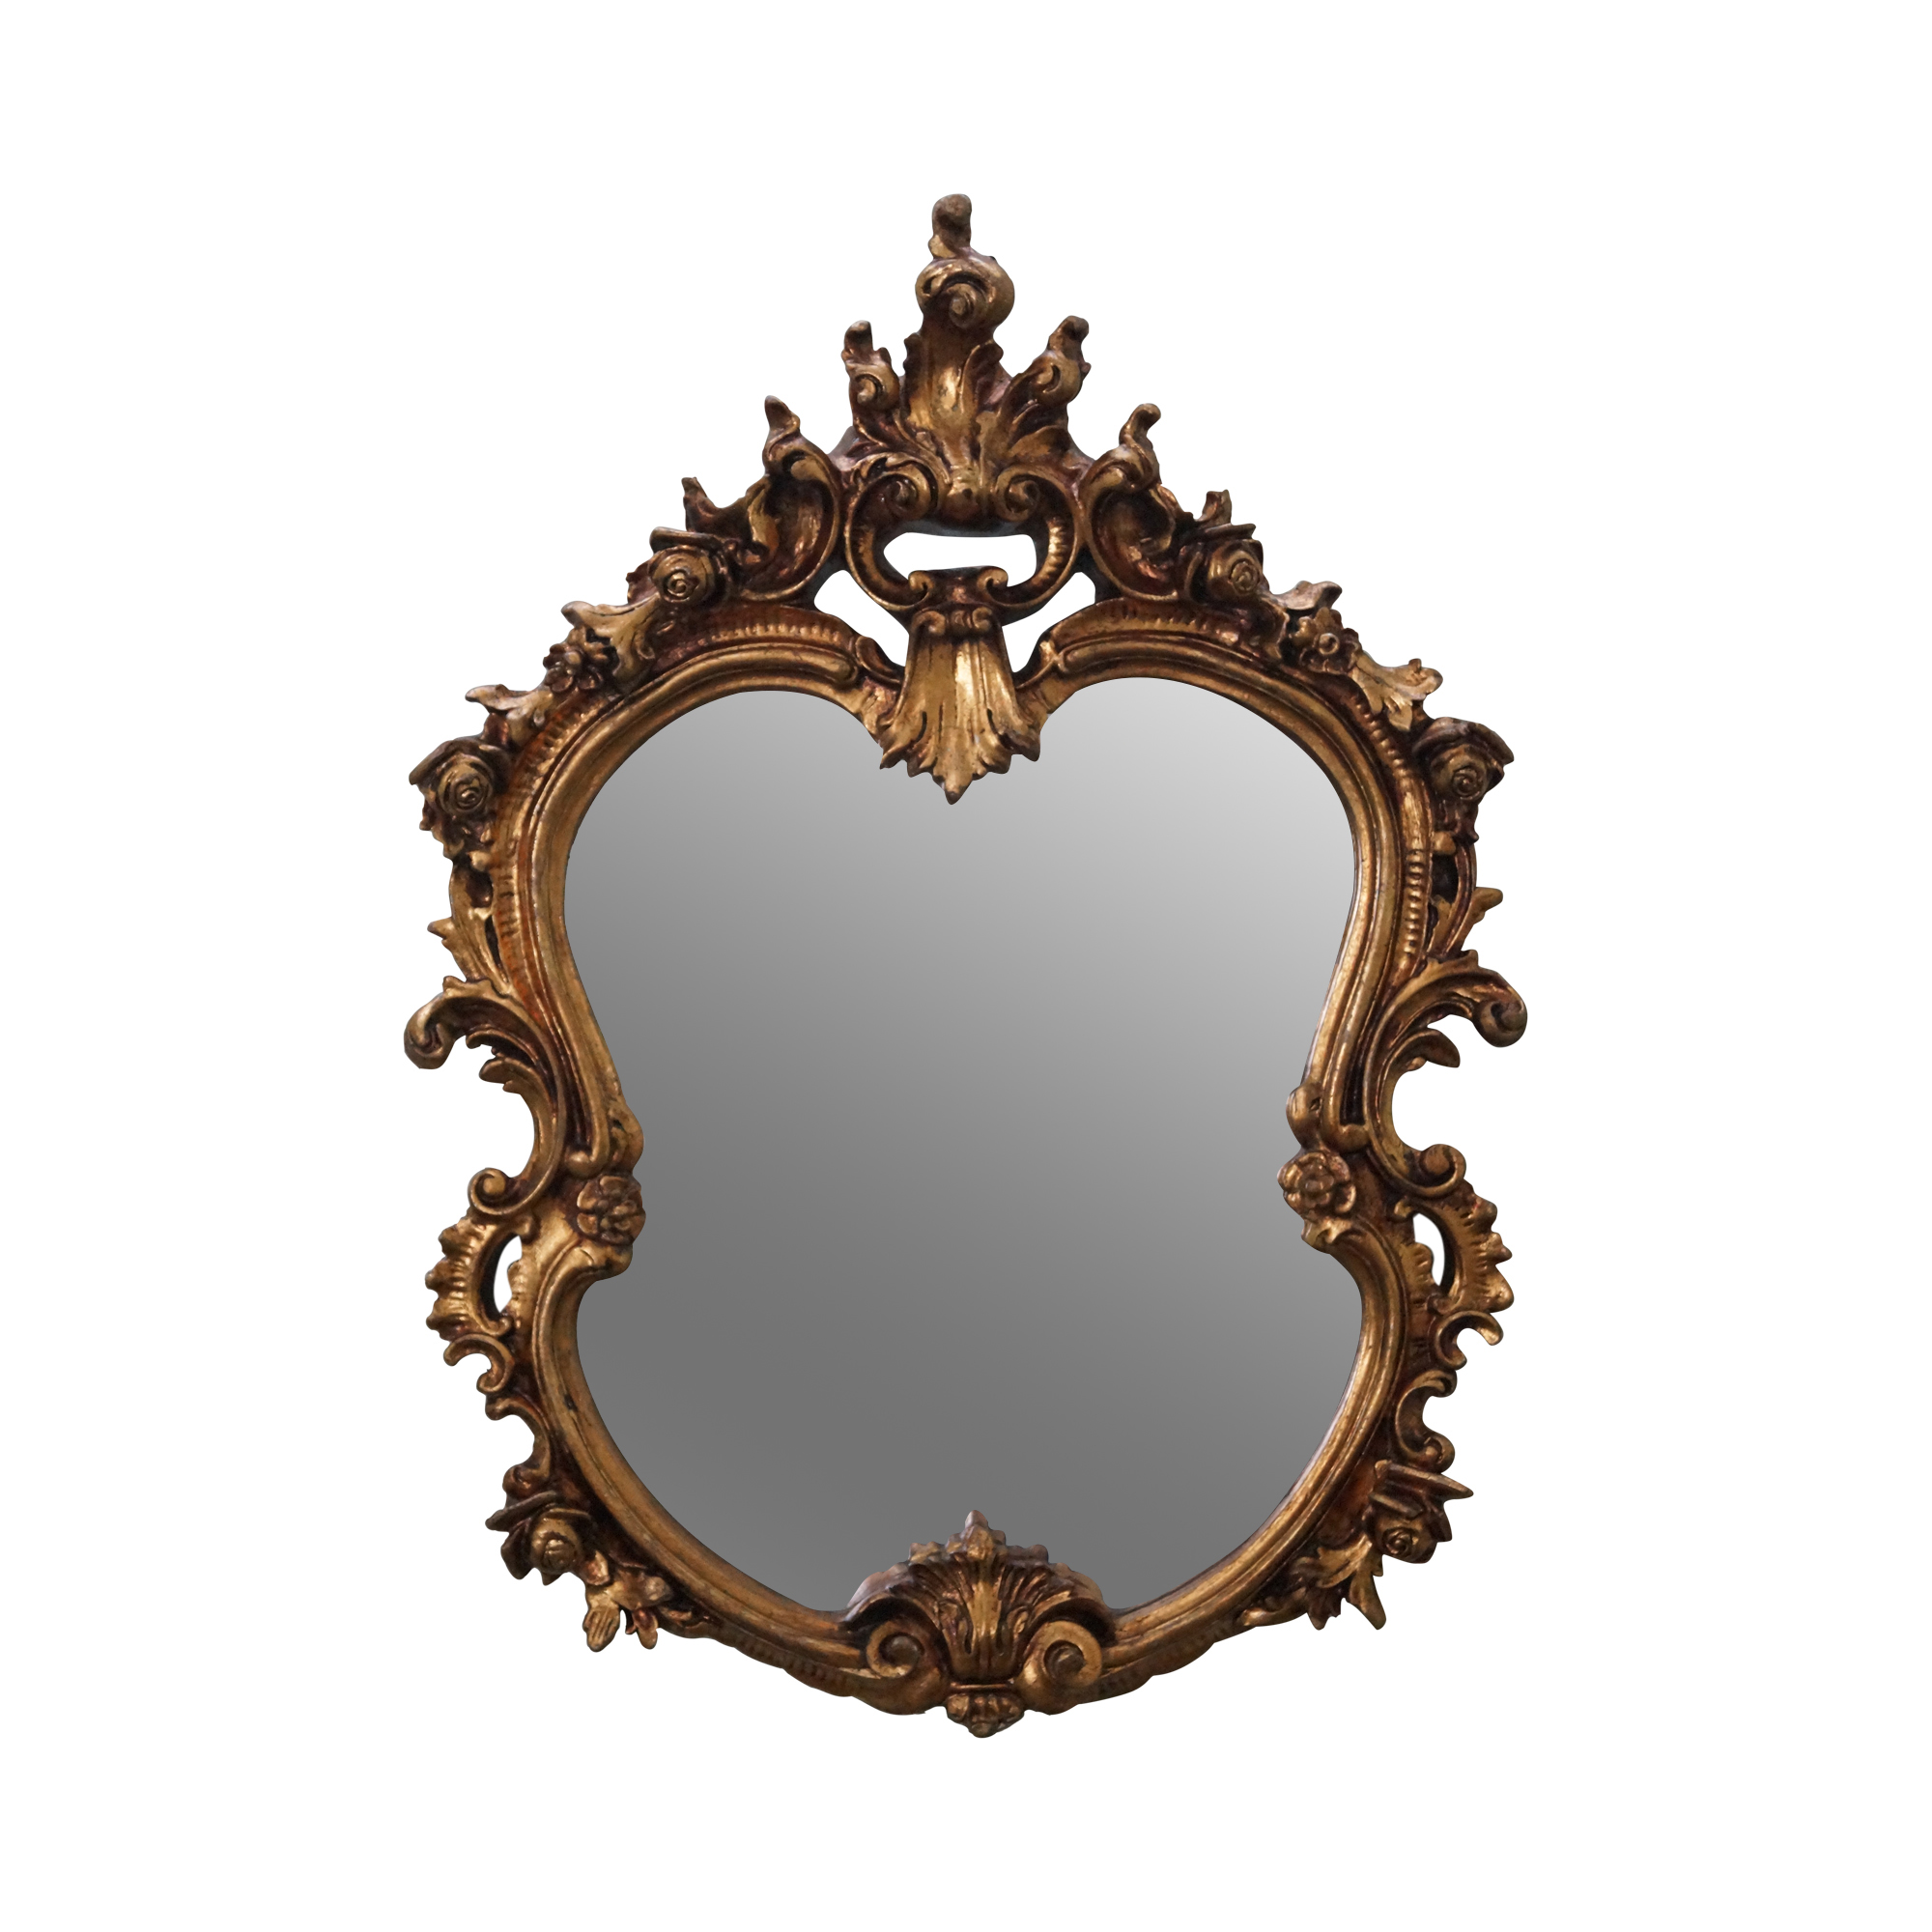 Ornate gold gilt frame rococo hanging wall mirror chairish for What is a gilt mirror